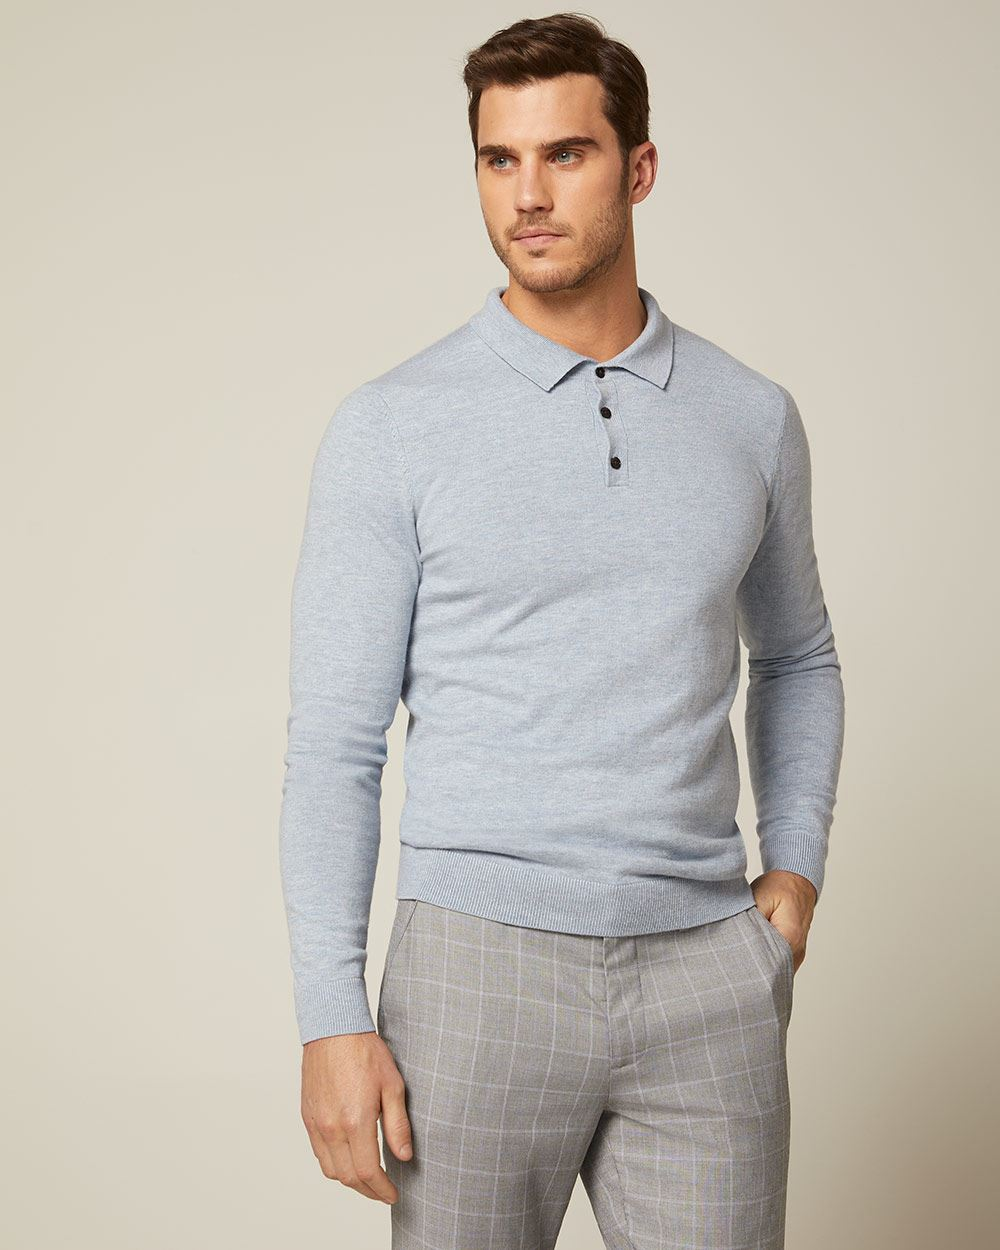 Long sleeve light blue polo sweater